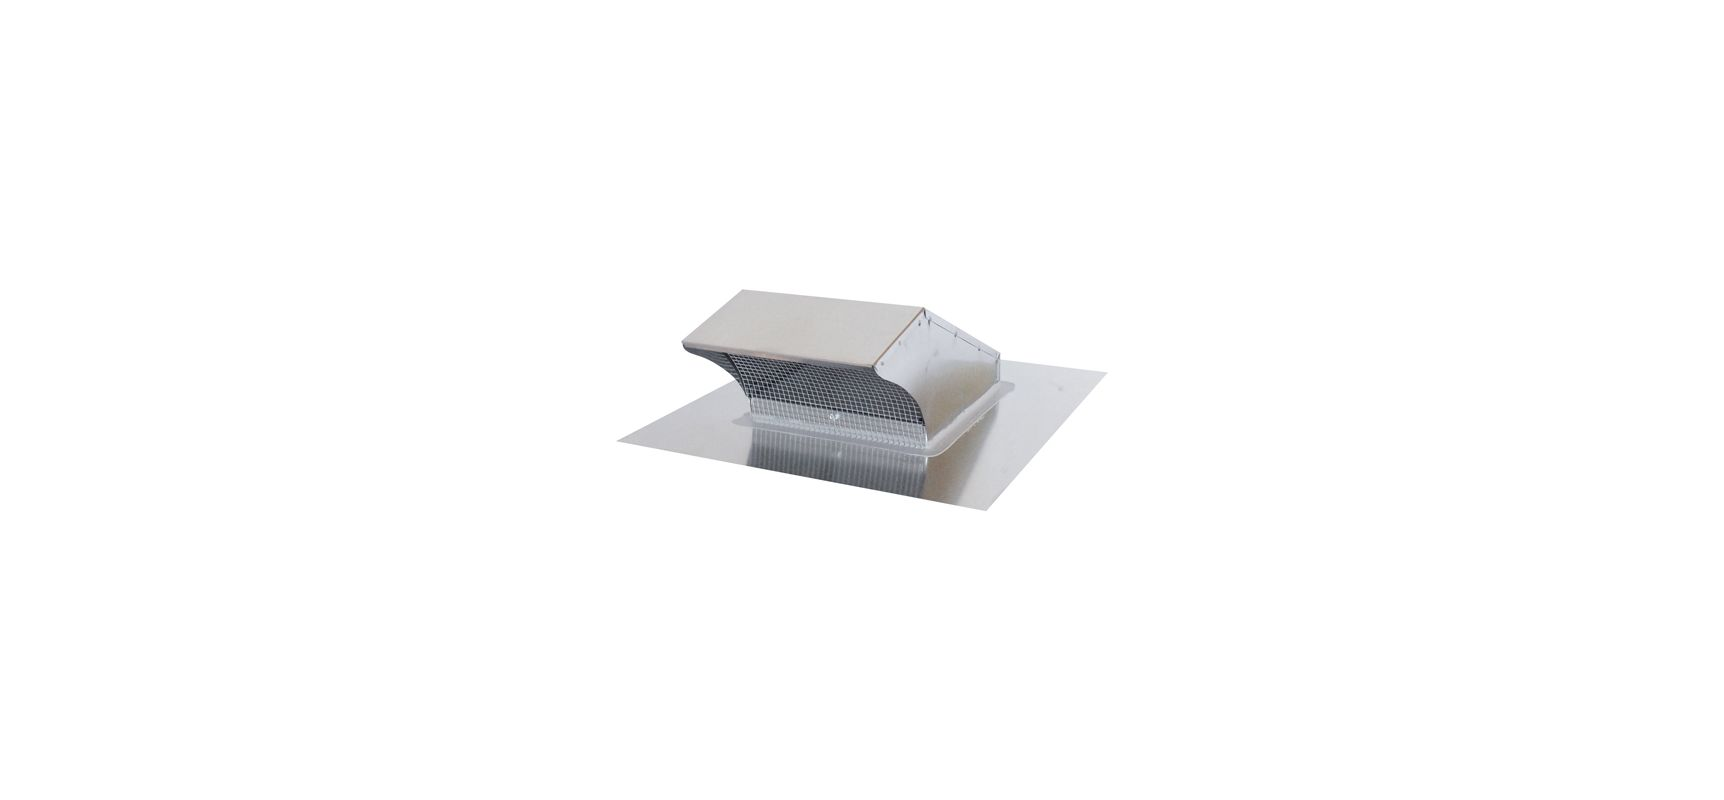 #5E646D Air King PRC8R NA 8 Inch Round Duct Roof Cap With Bird  Brand New 2451 Duct Splitter Damper images with 1724x800 px on helpvideos.info - Air Conditioners, Air Coolers and more